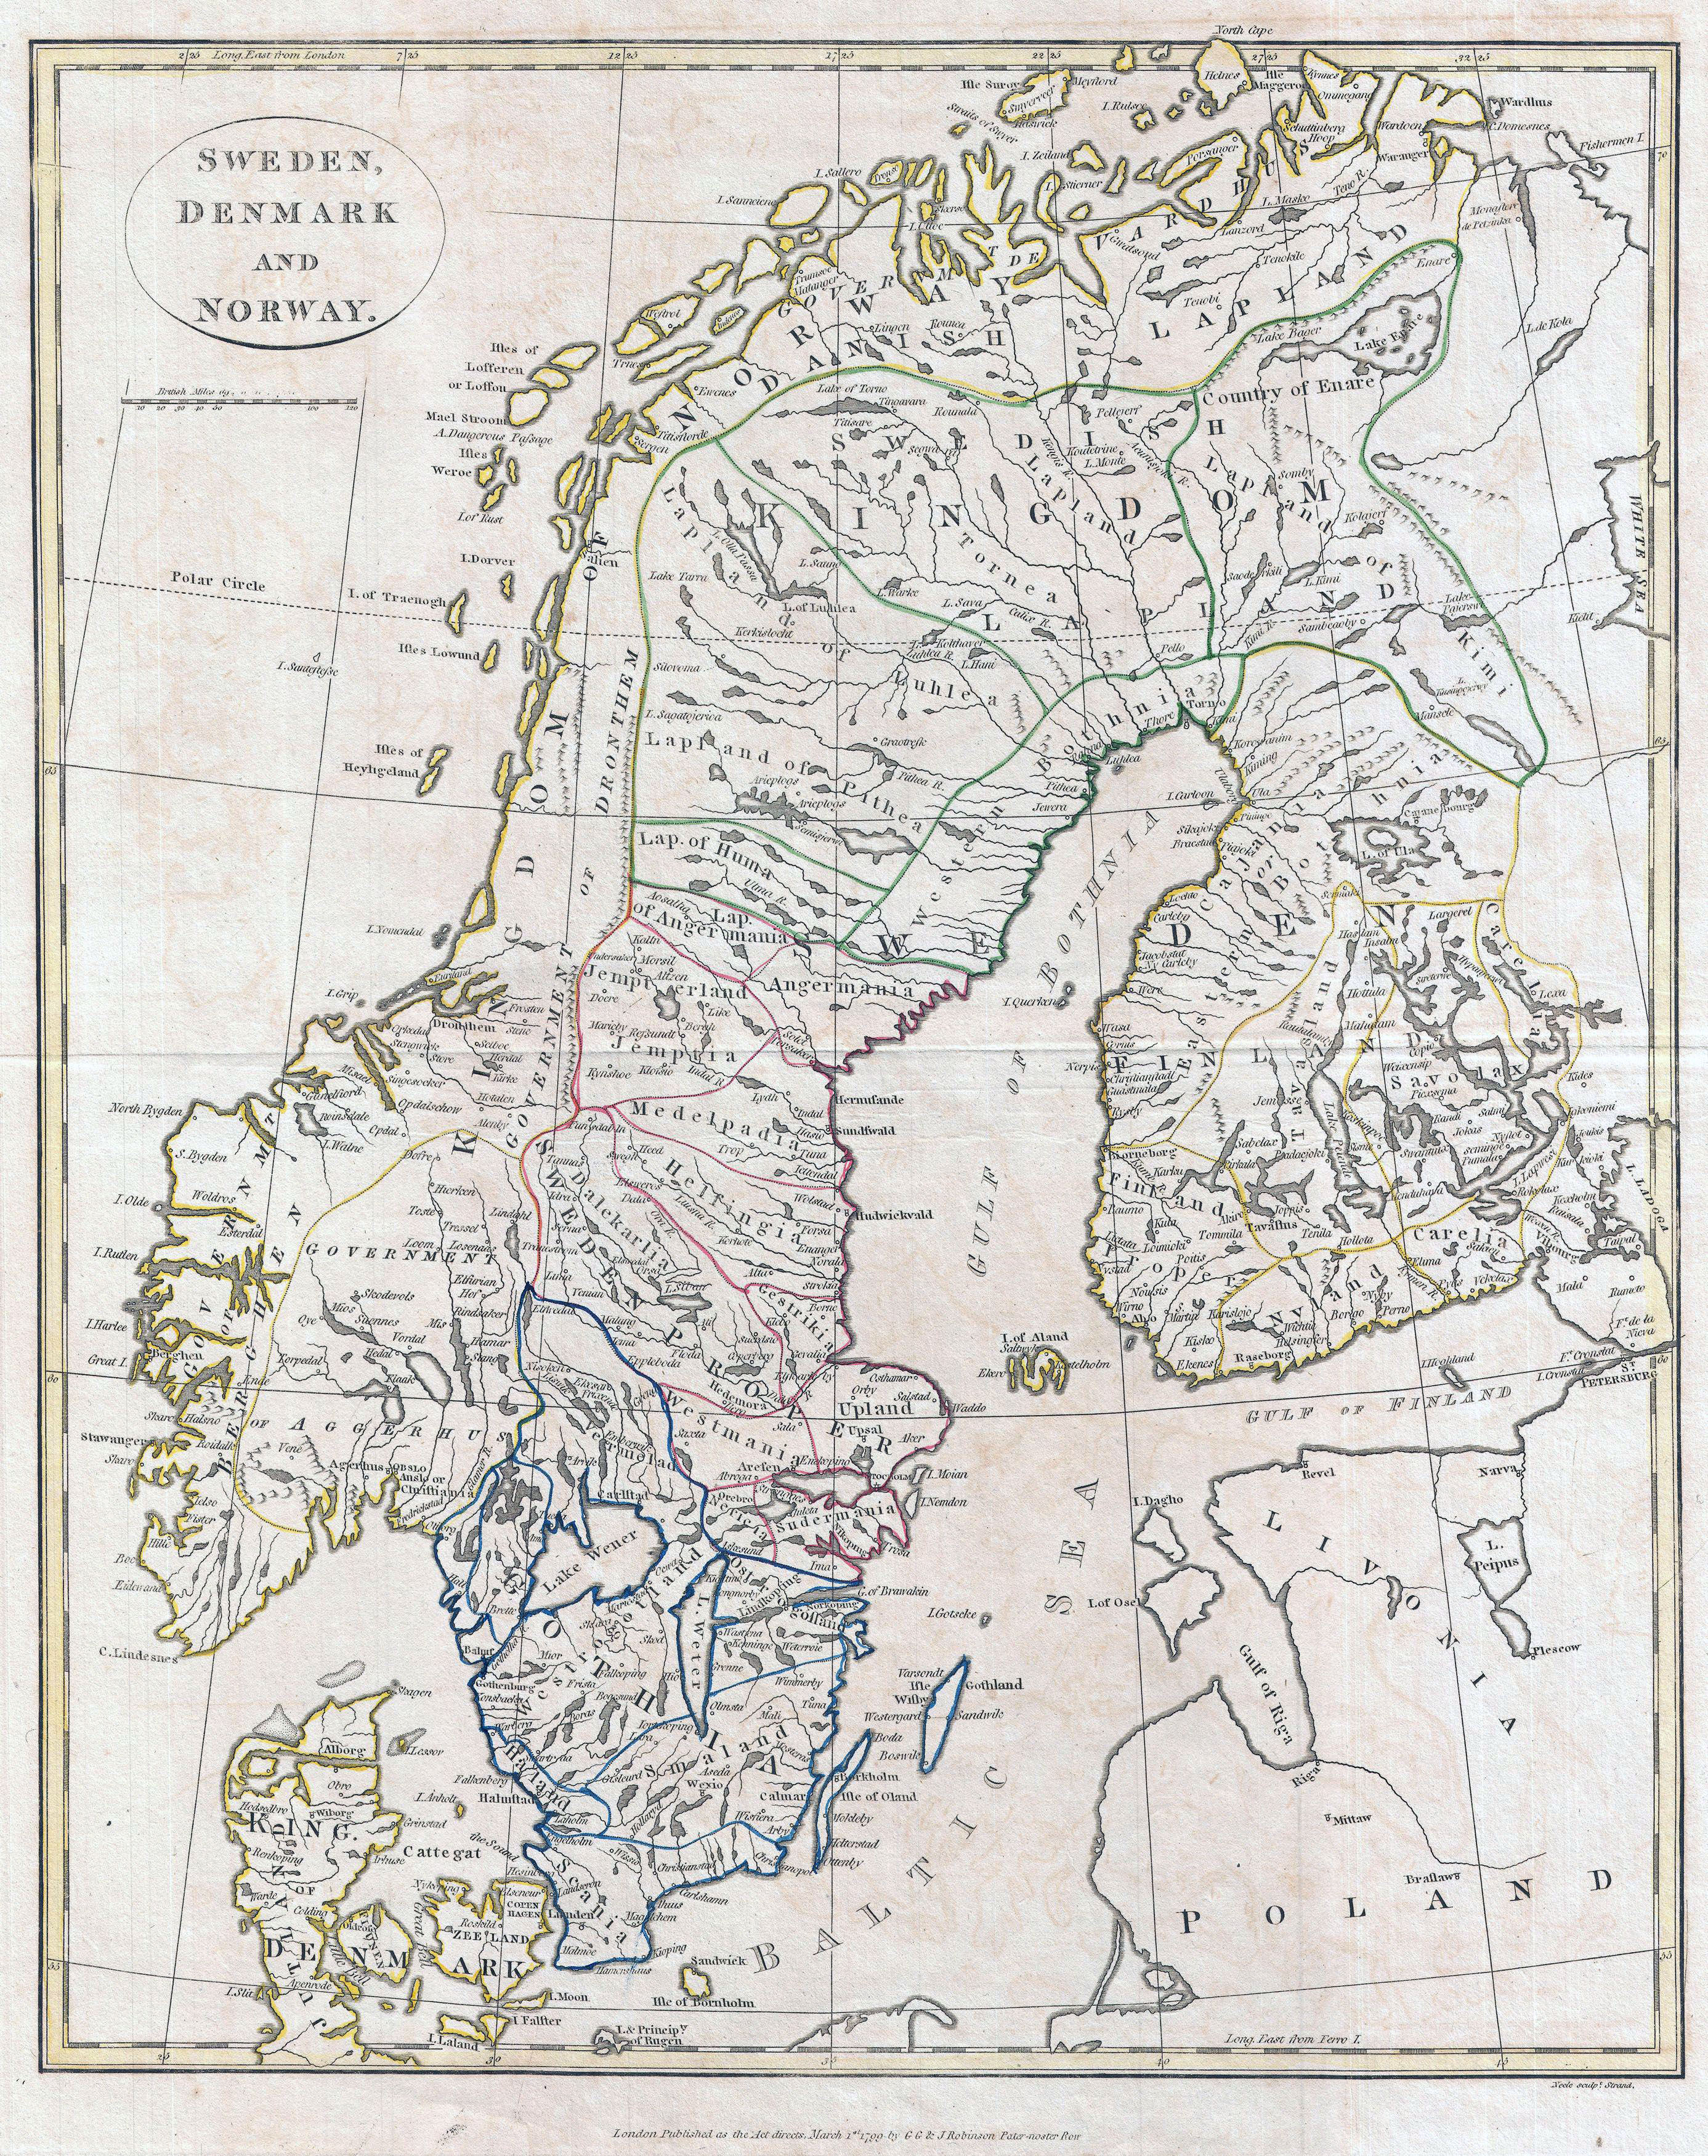 Large Detailed Old Political Map Of Sweden Denmark And Norway - Norway map of cities